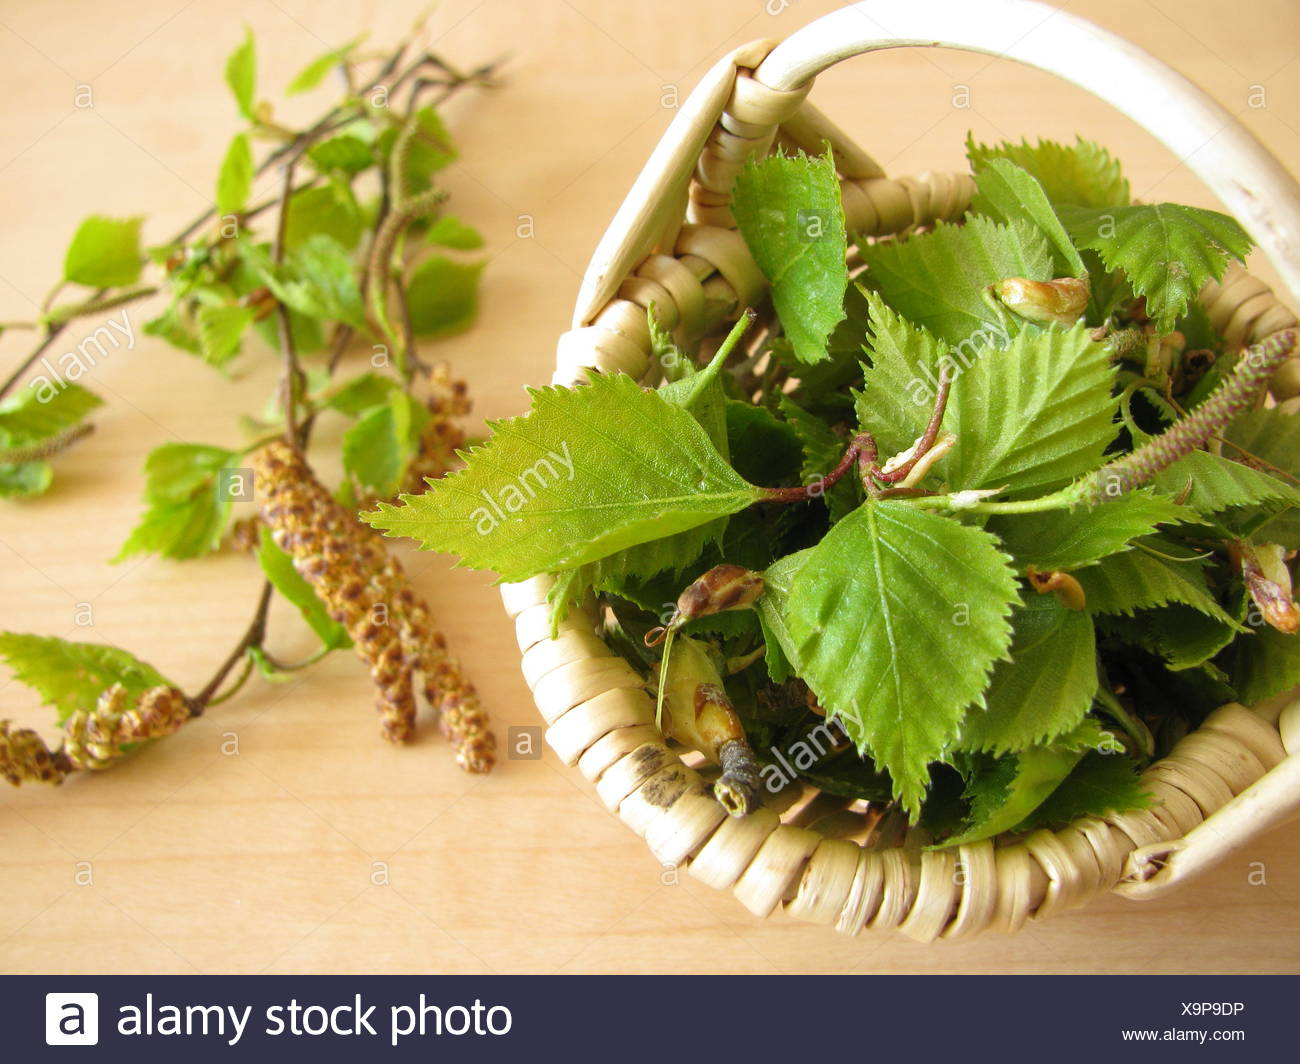 birch birch leaves tealeaves - Stock Image